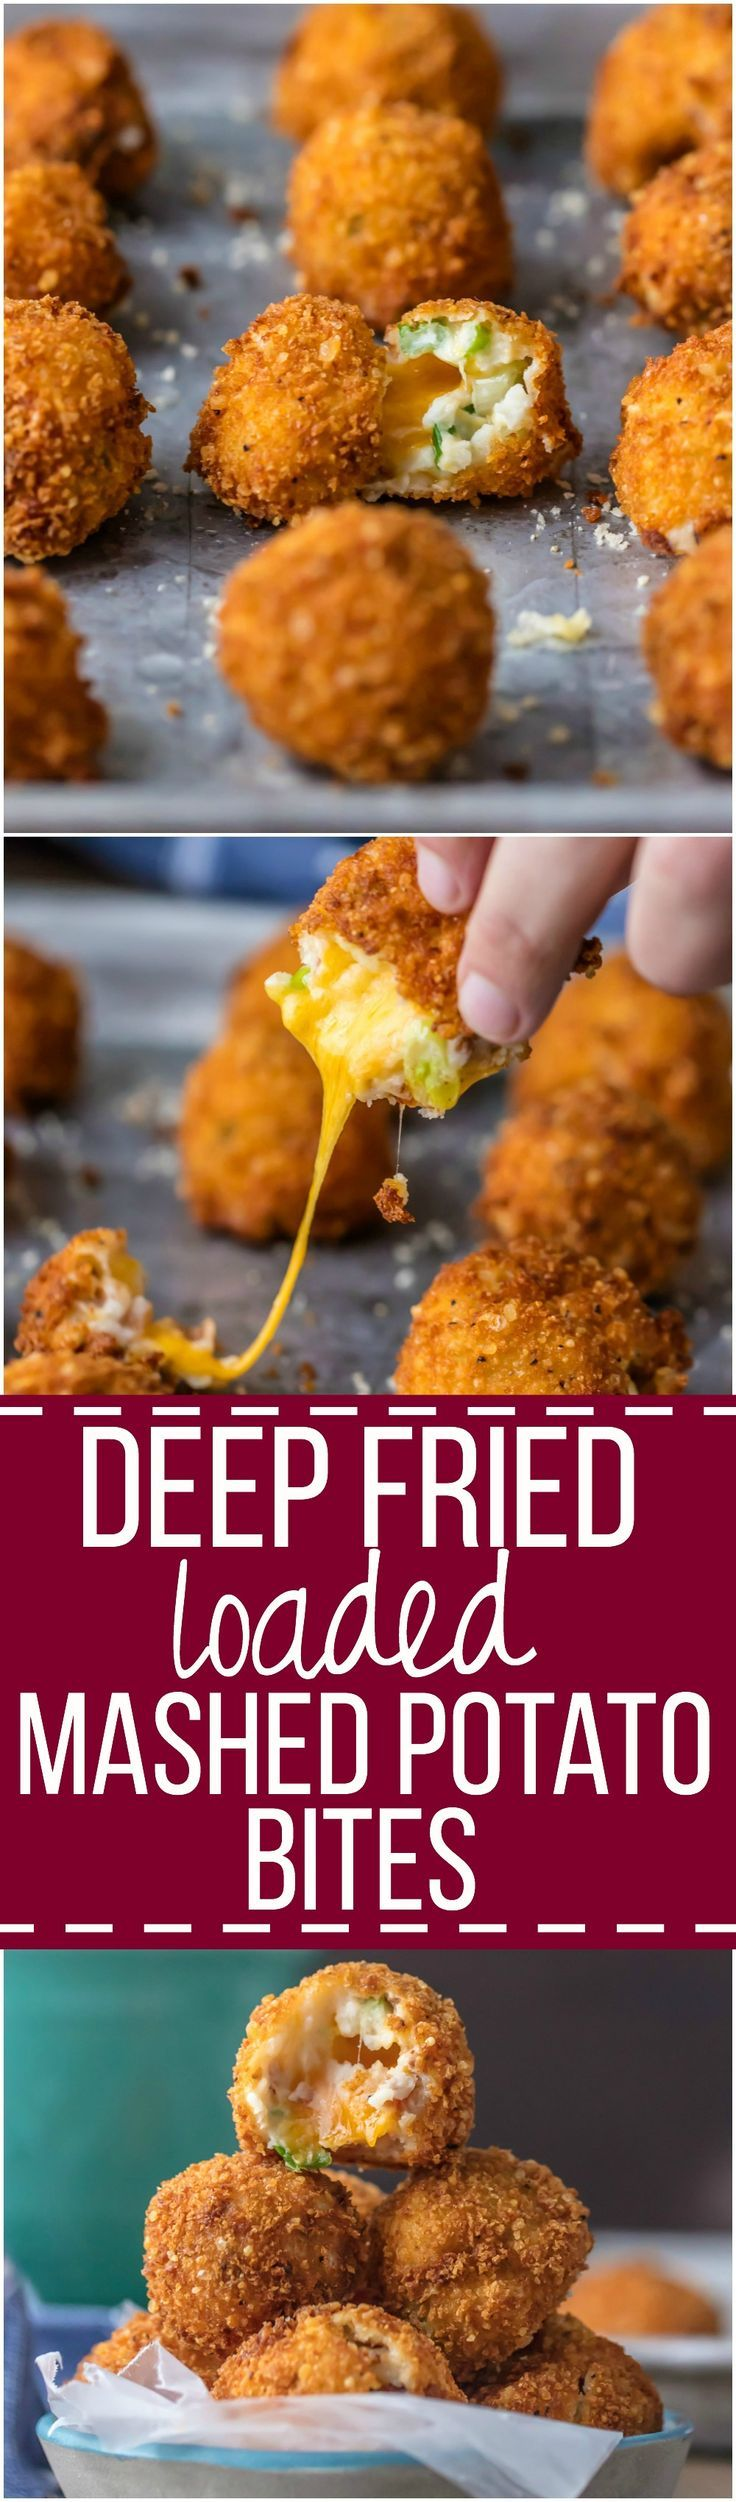 DEEP FRIED LOADED MASHED POTATO BITES loaded with bacon, cheese, and onions are perfect for Thanksgiving leftovers! Put those leftover mashed potatoes to good use and fry them! The ultimate appetizer or side dish! /bordencheese/ #spon